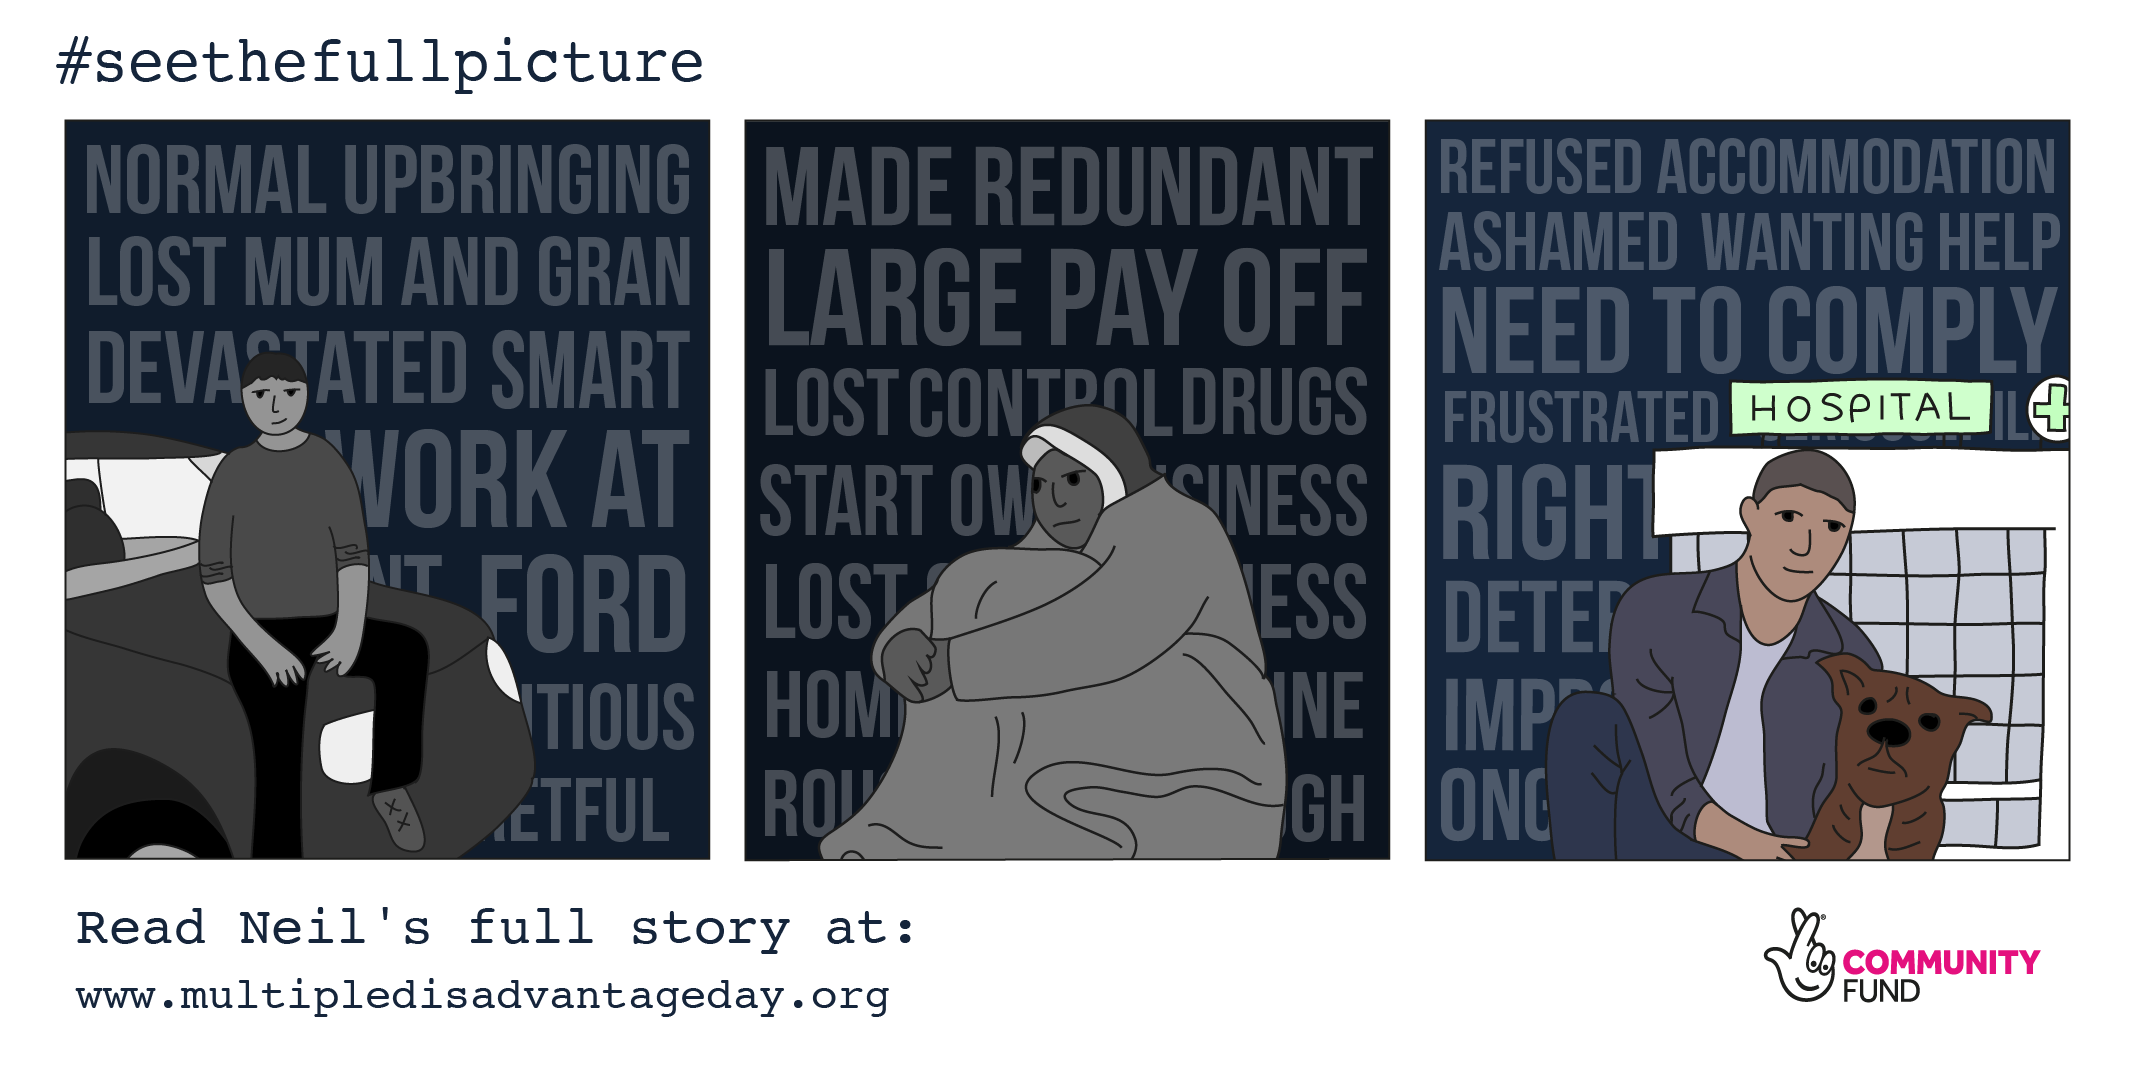 Multiple Disadvantage Day - #seethefullpicture - Campaign Graphics - True Stories - Neil's Story